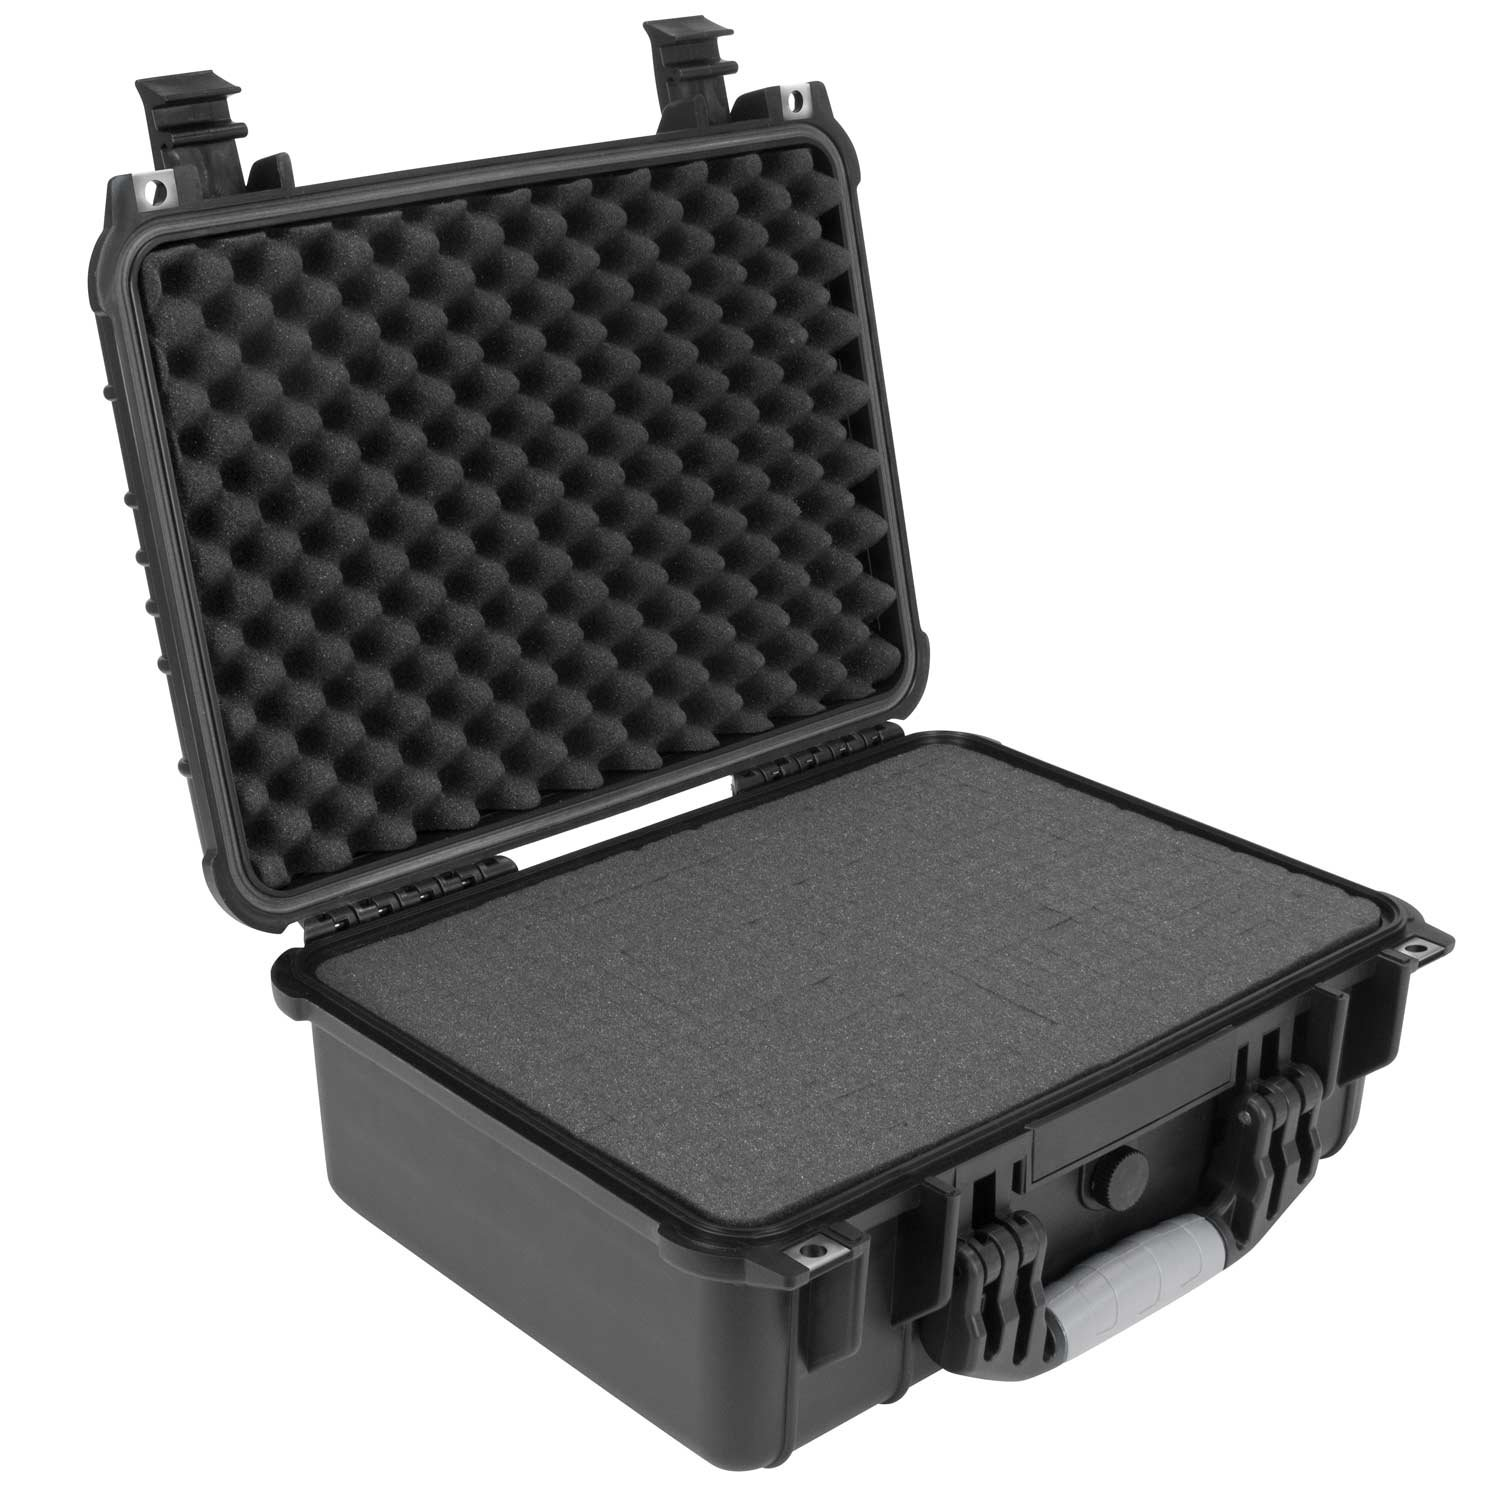 Elkton Outdoors Hard Gun Case: Fully Customizable Pistol Case: Holds 4 Handguns and 8 Magazines: Crush Resistant & Waterproof! by Elkton Outdoors (Image #6)